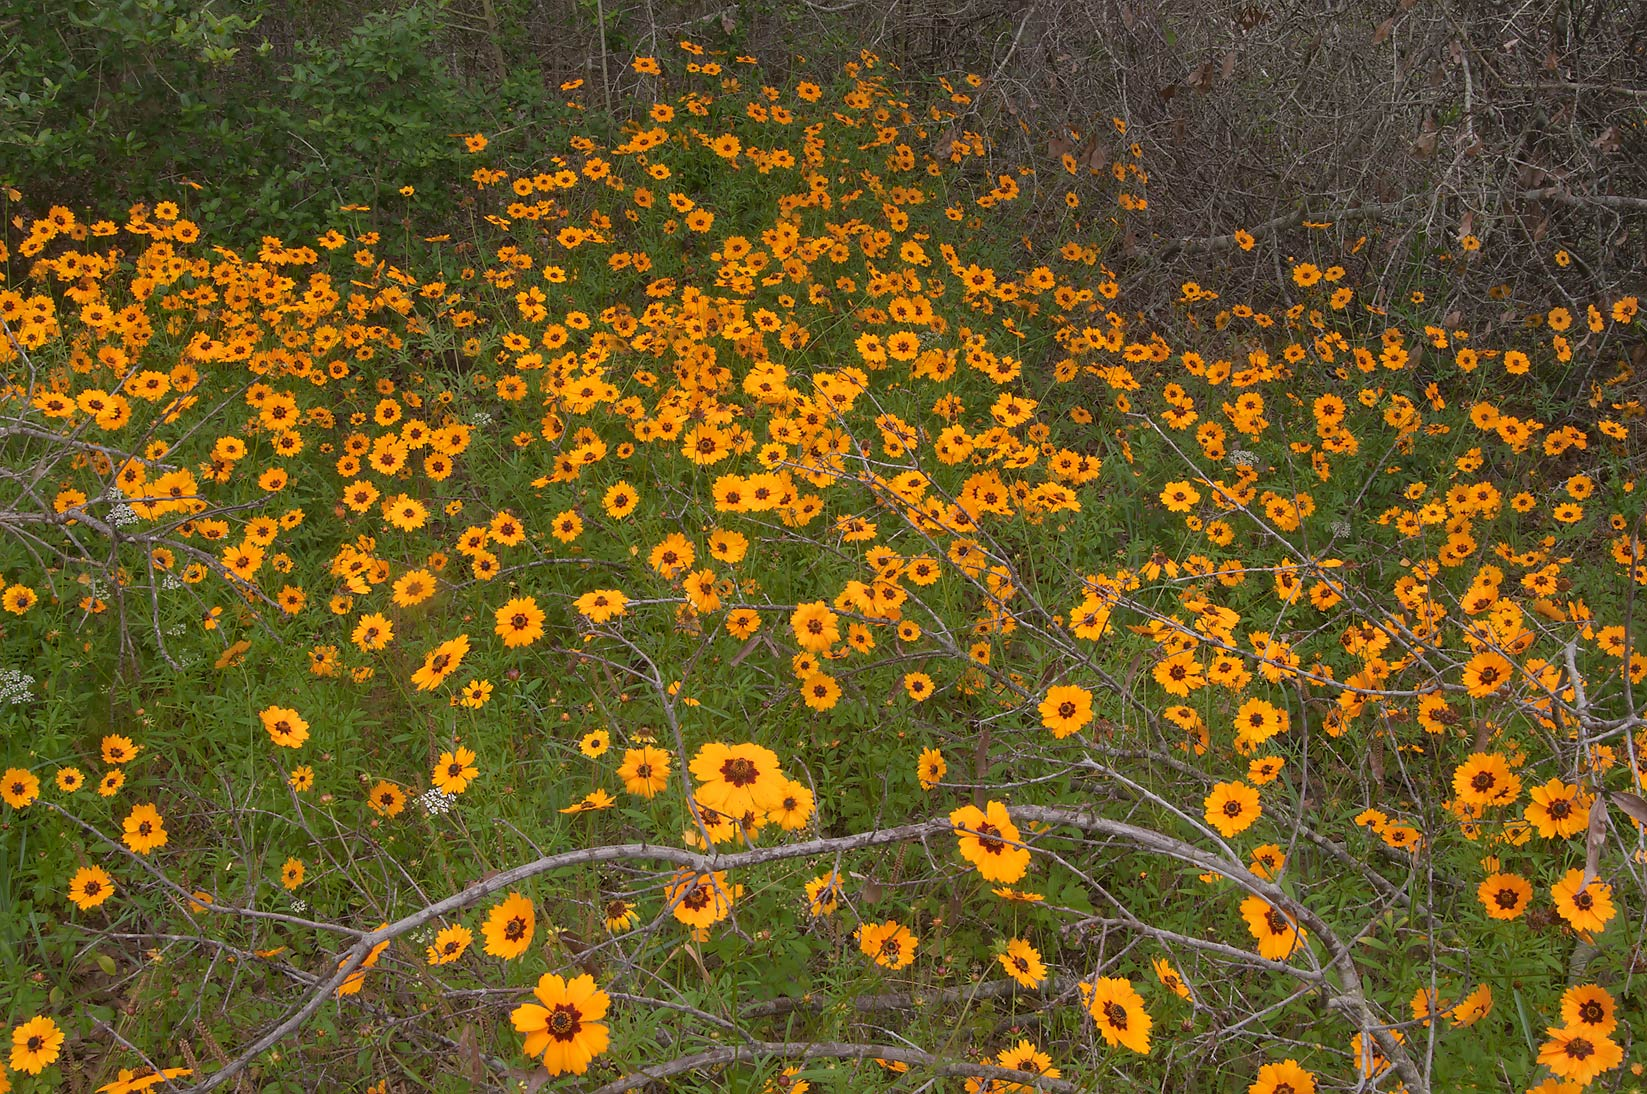 Coreopsis near dry trees in Lick Creek Park. College Station, Texas